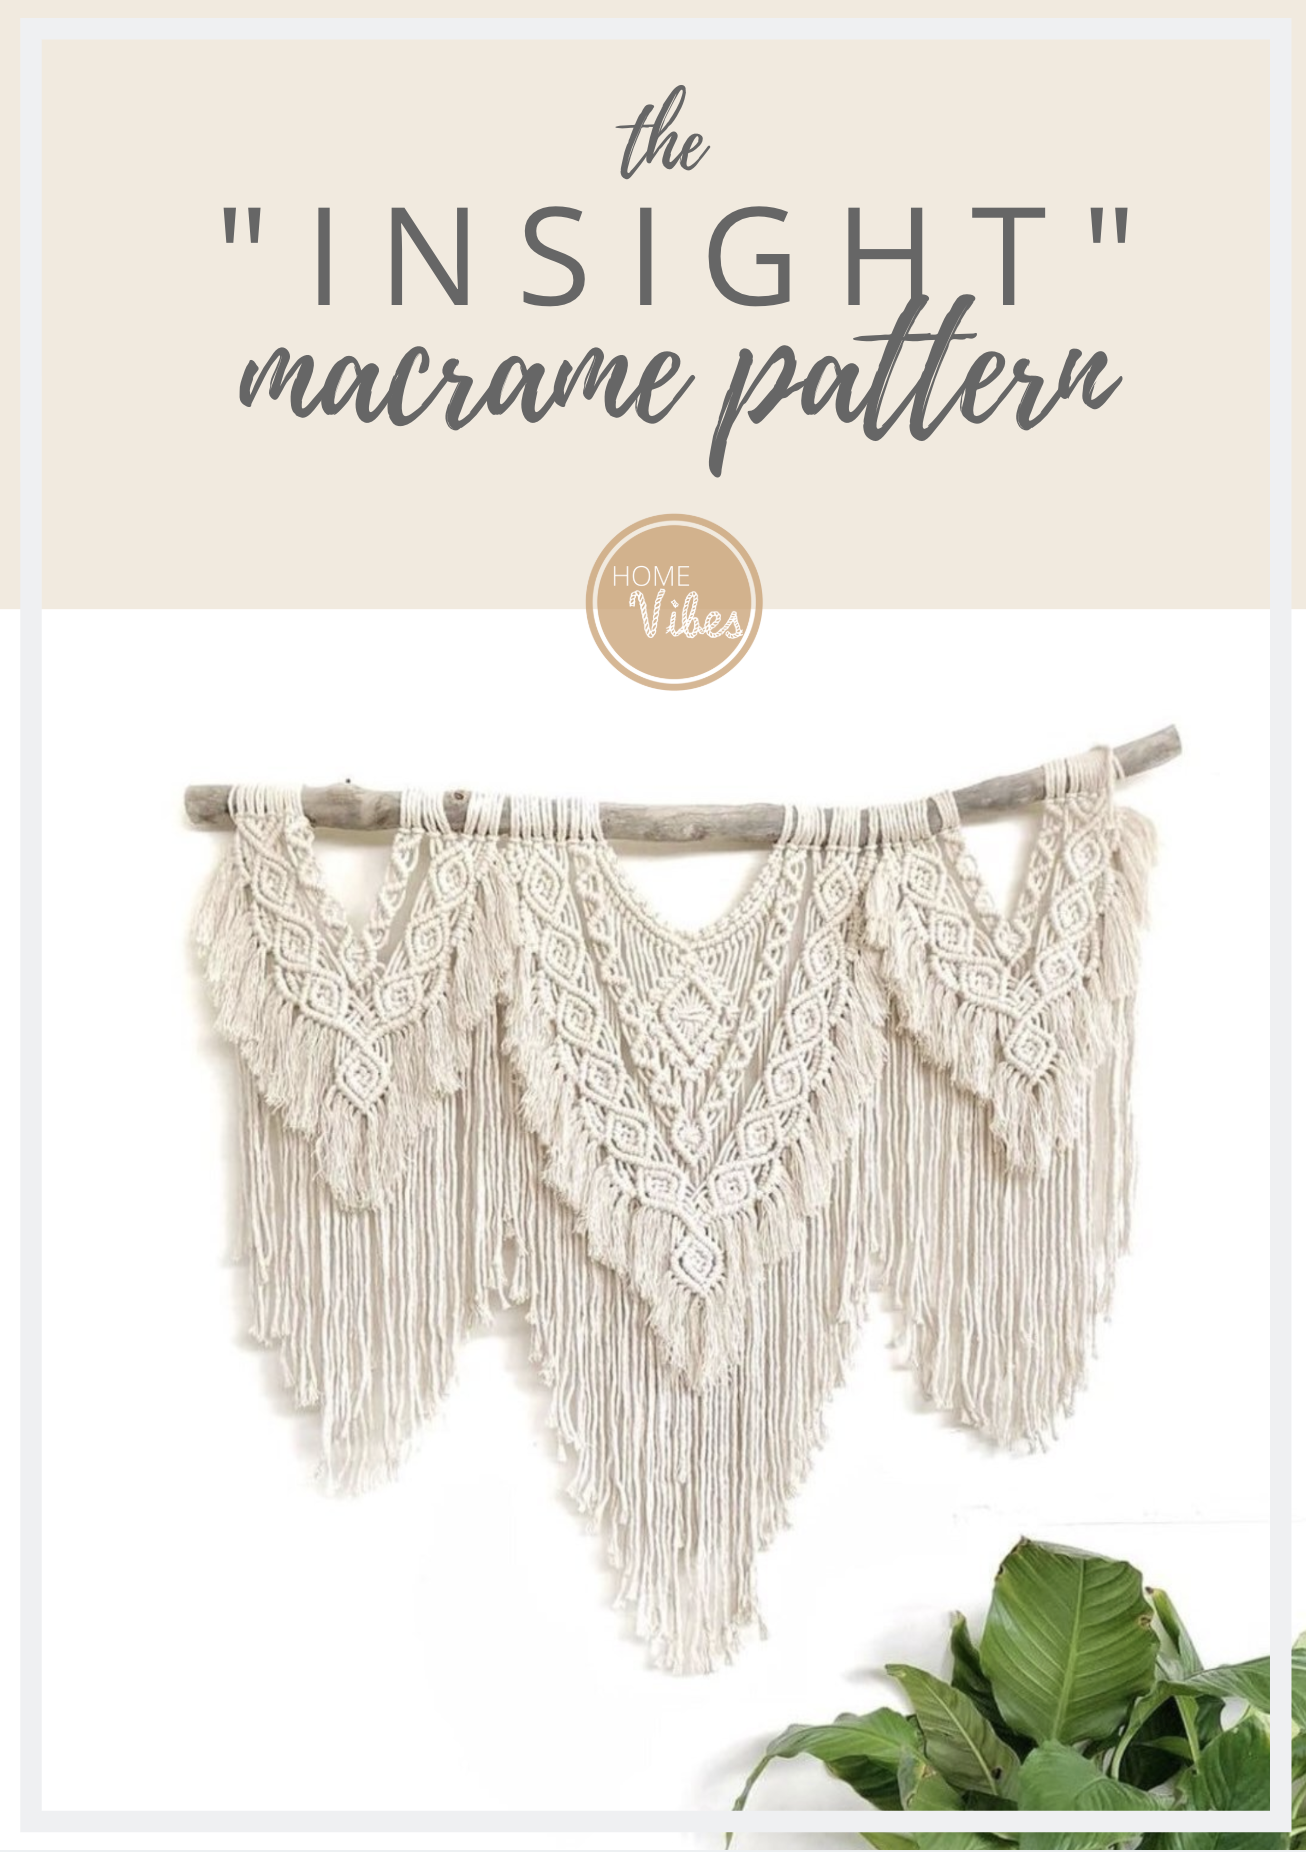 Large Macrame Wall Hanging Pattern Insight Step By Step Instructions Macrame Adva In 2020 Macrame Patterns Macrame Patterns Tutorials Macrame Wall Hanging Patterns